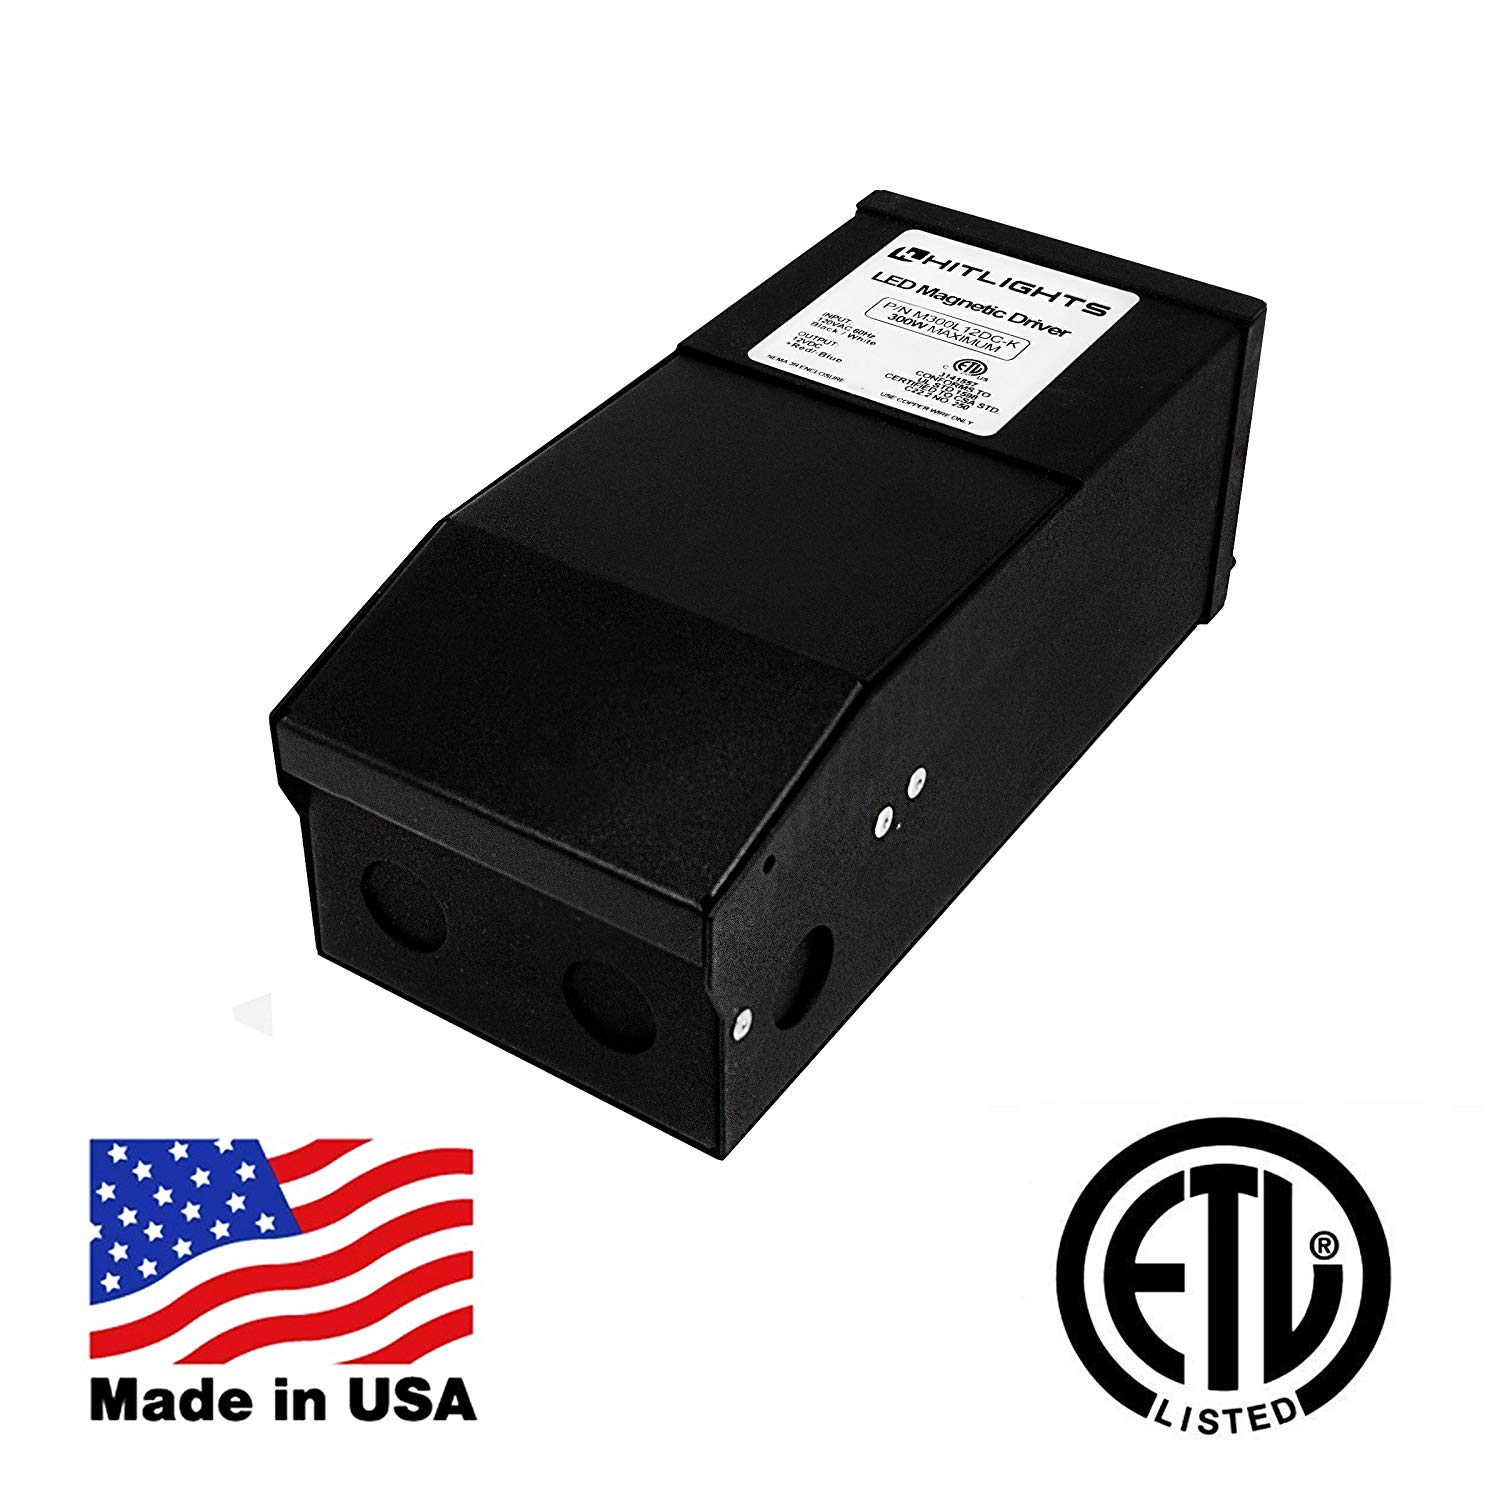 HitLights 300 Watt Dimmable Driver, Magnetic, for LED Light Strips - 110V AC-12V DC Transformer. Made in the USA. Compatible with Lutron and Leviton